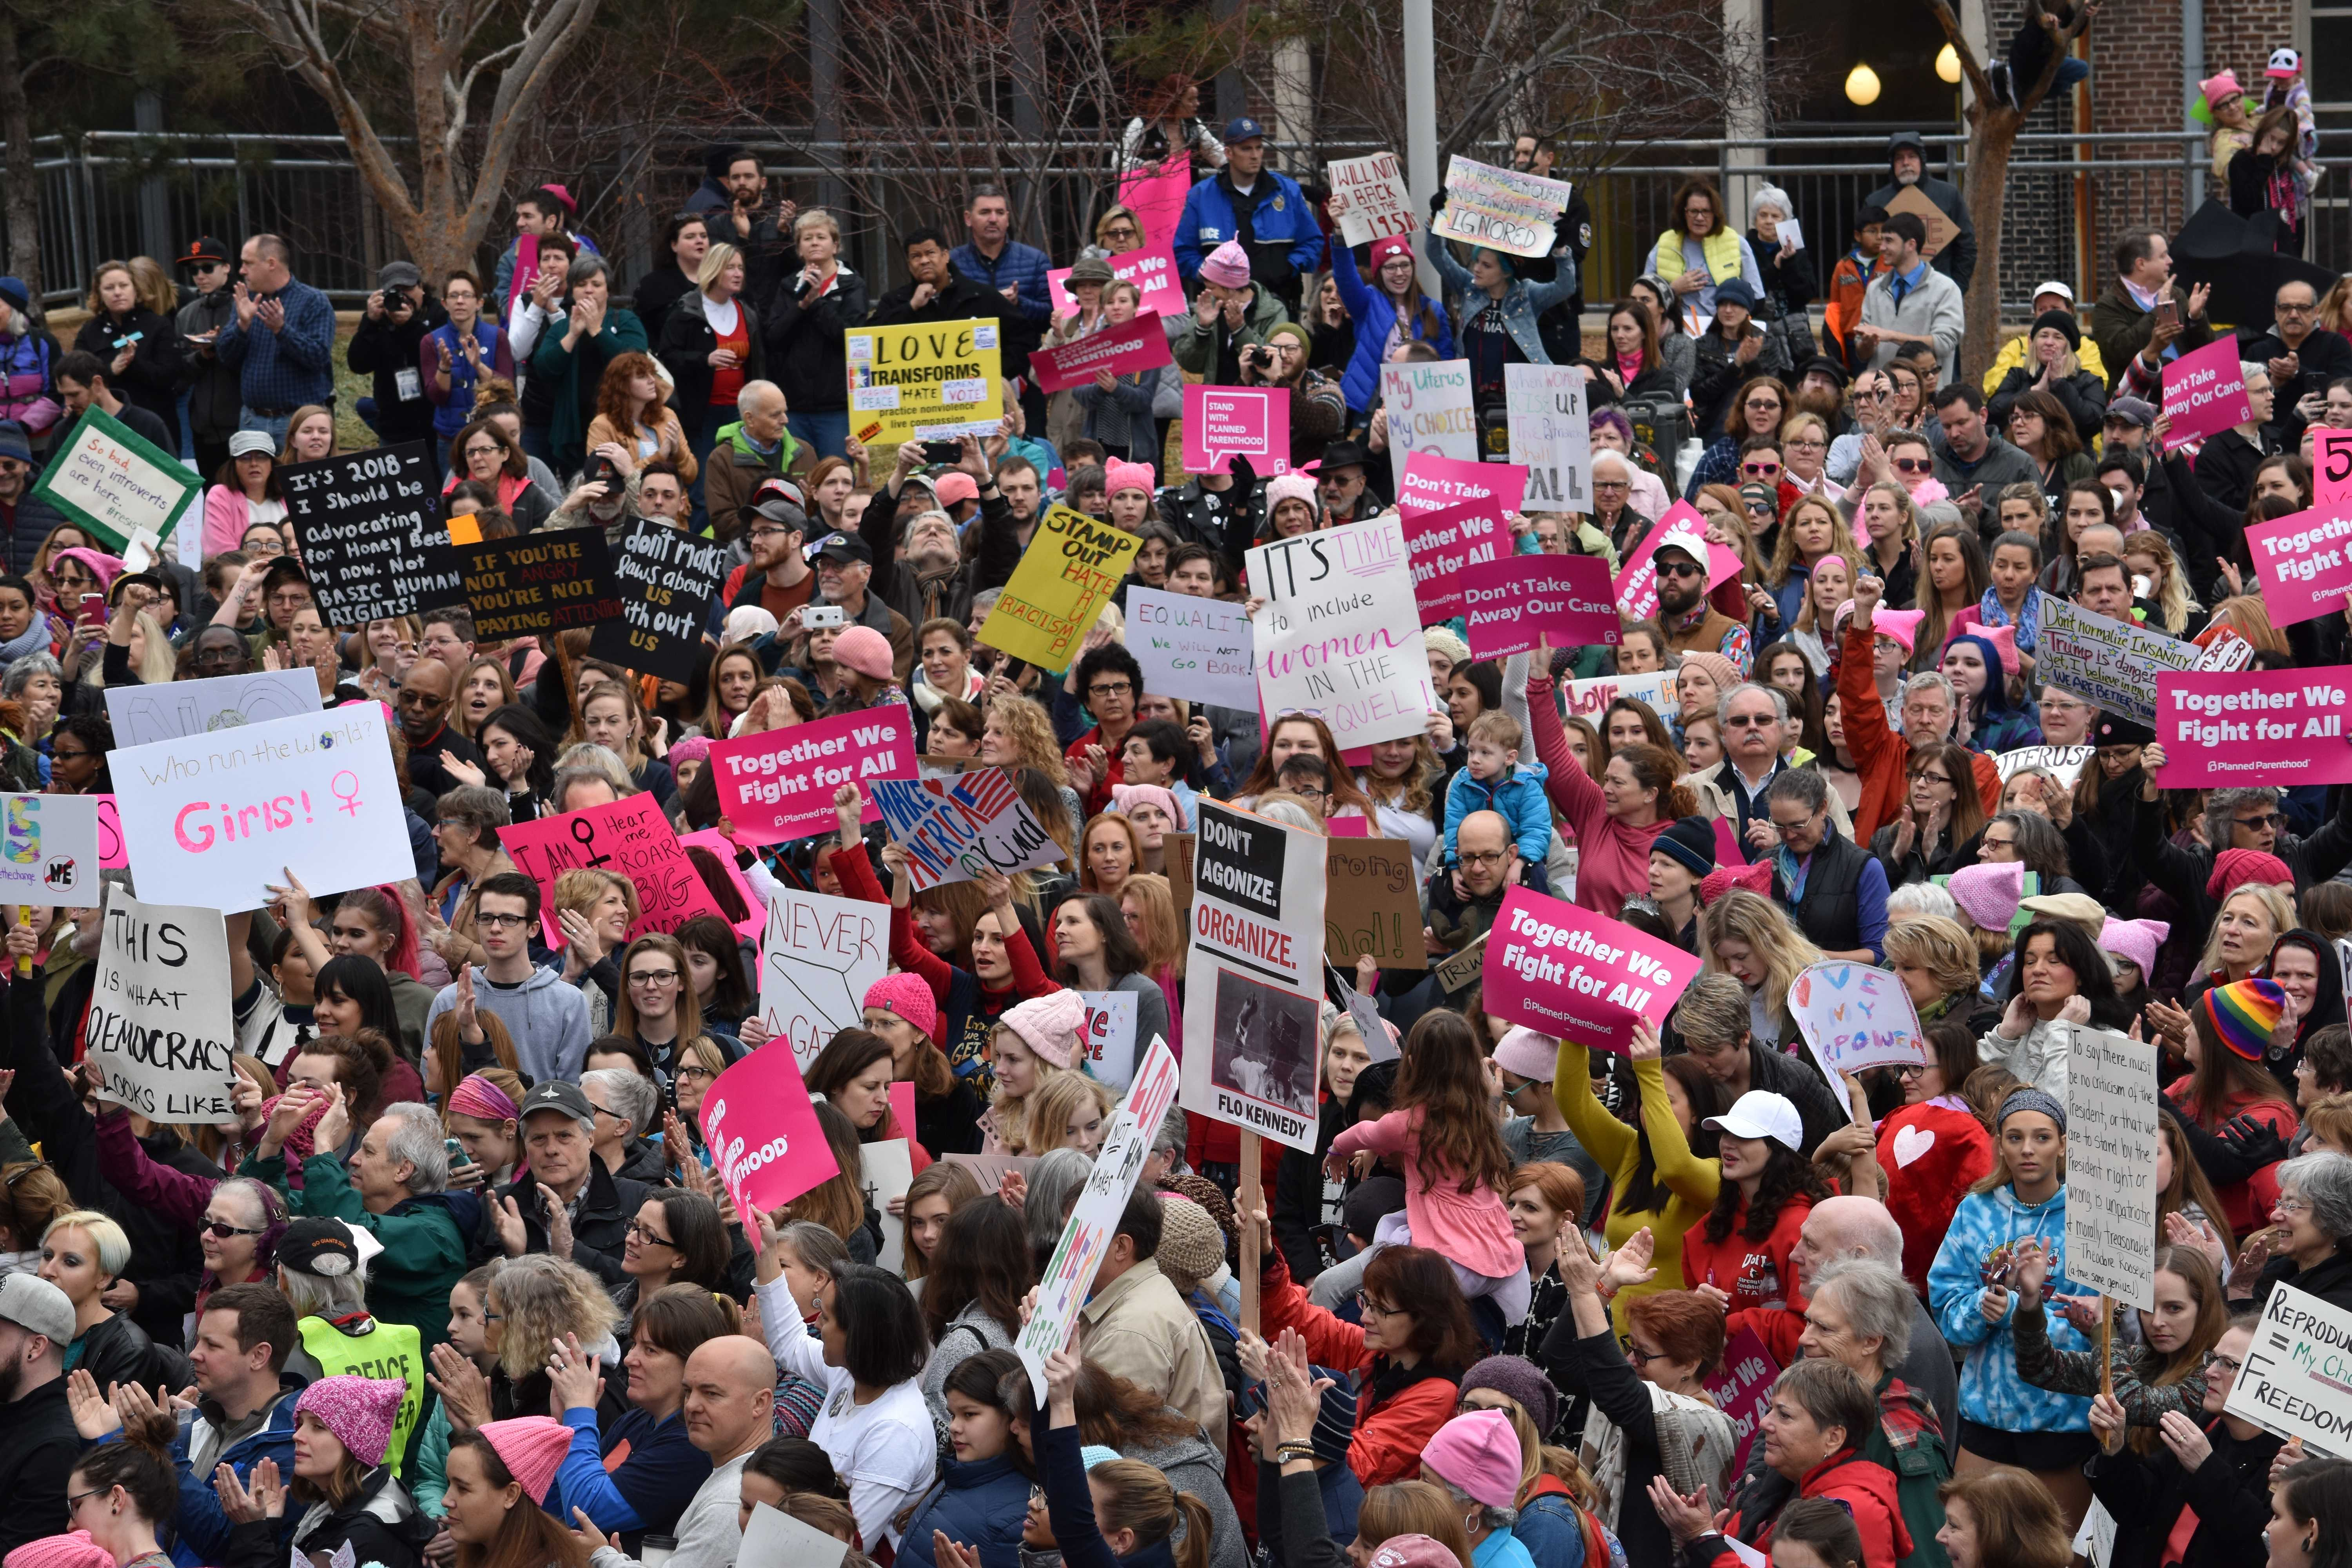 Women's March anniversary yields intersectionality rally